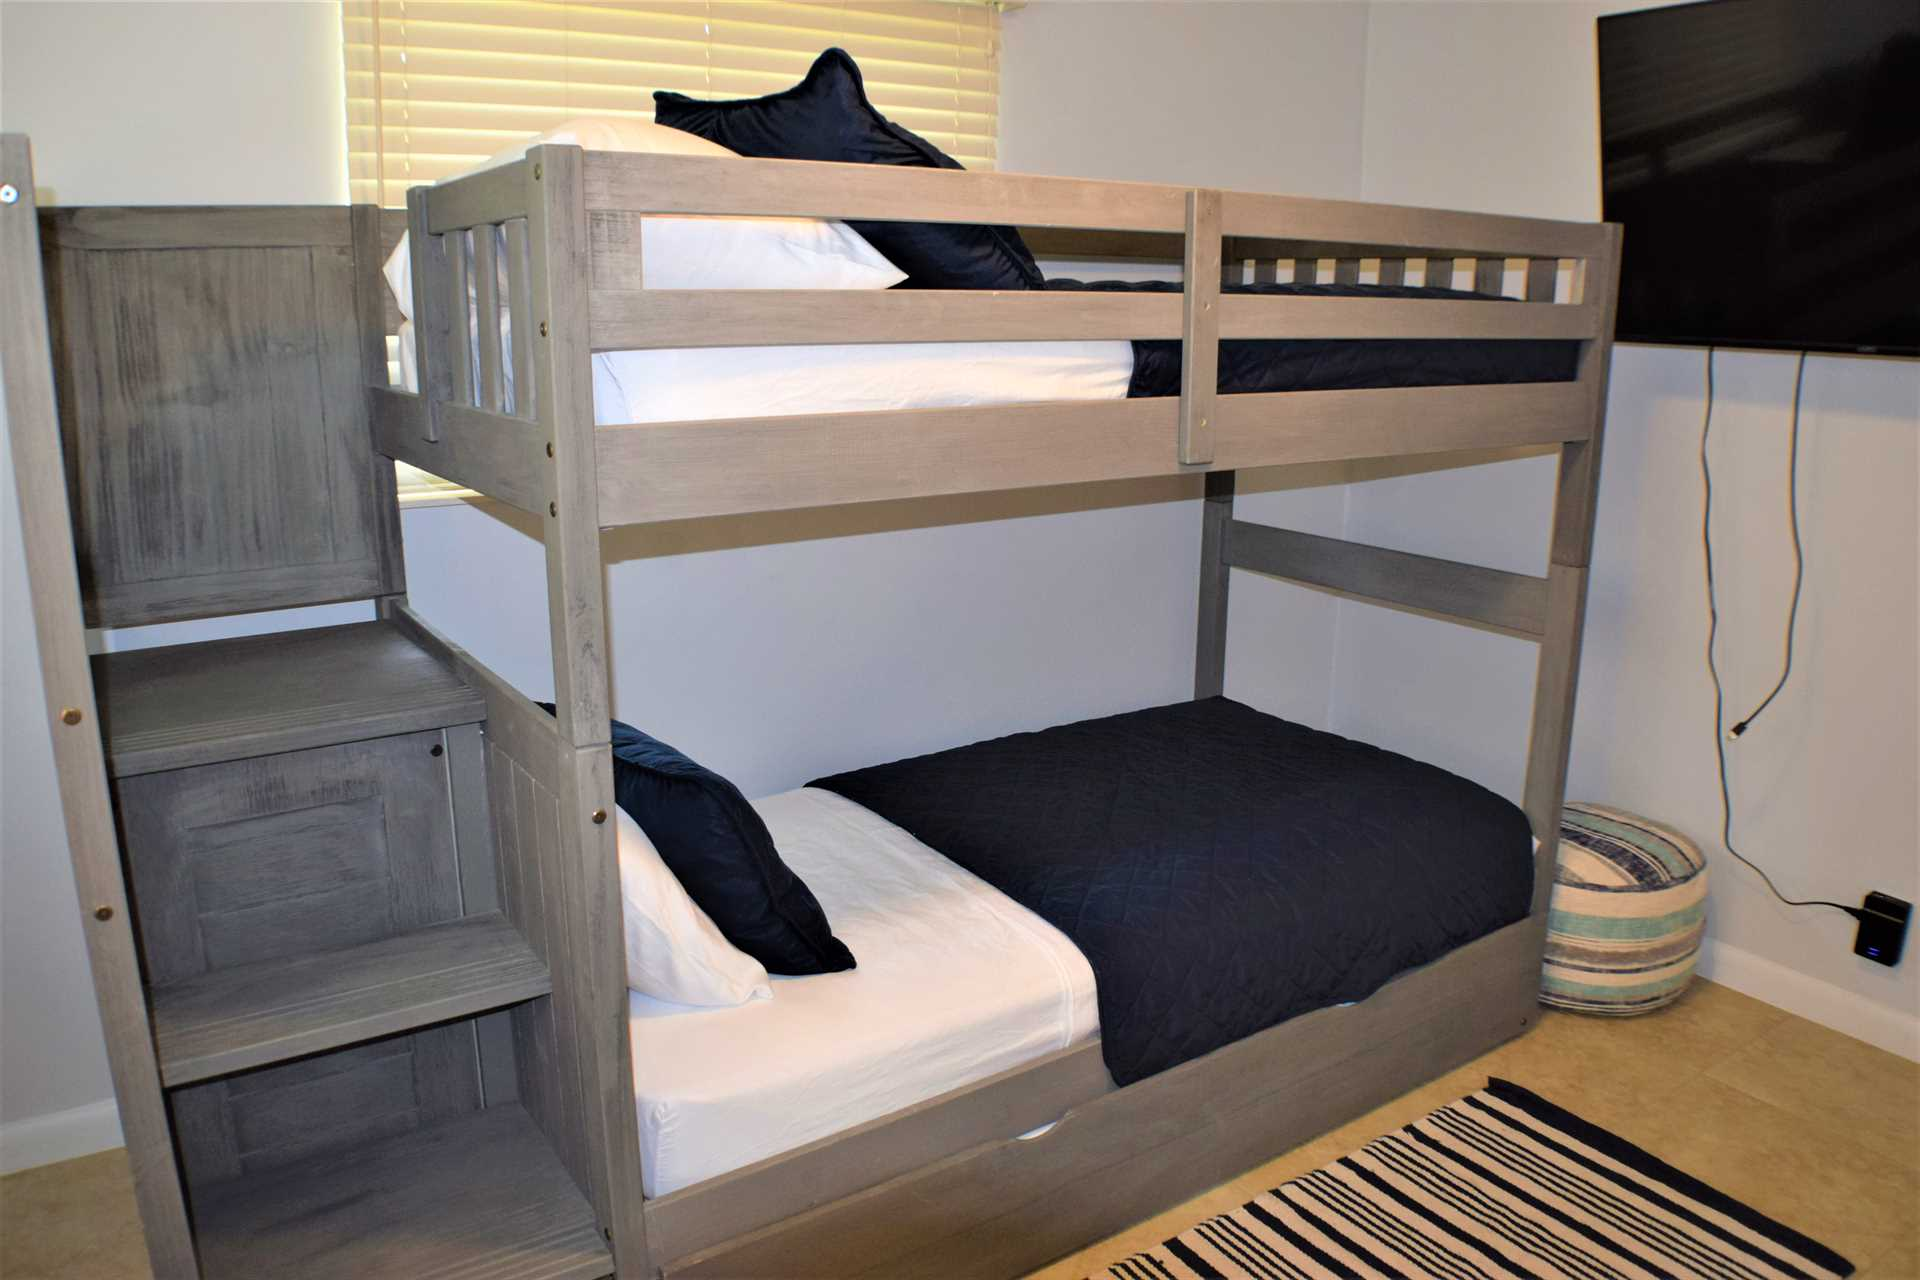 Fourth bedroom has bunk beds